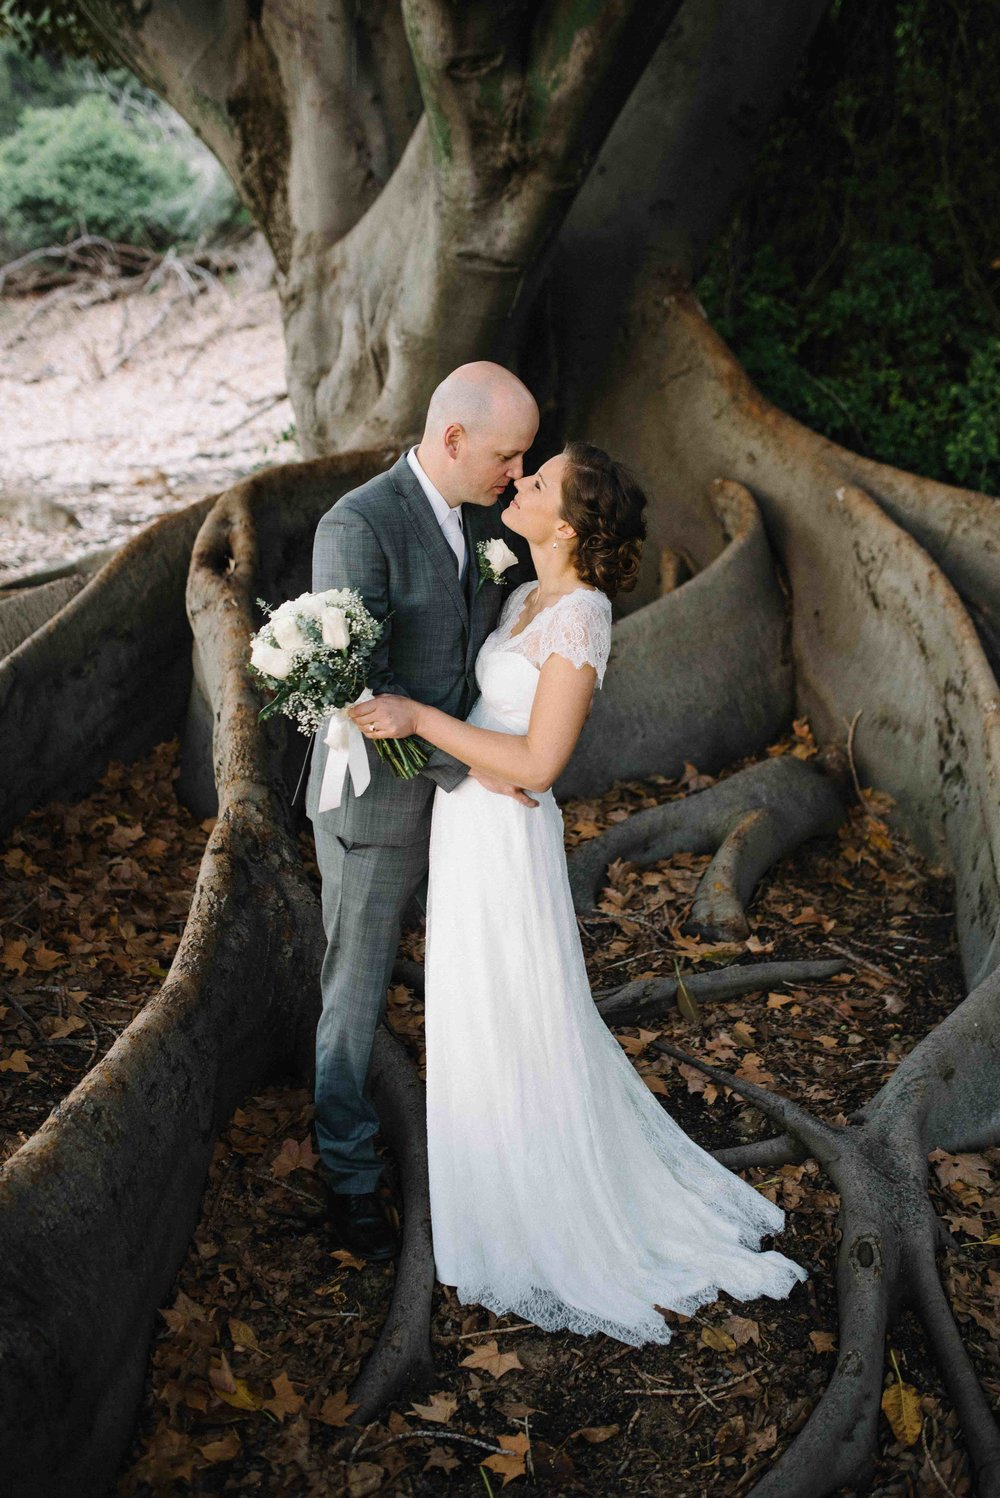 63-fig wedding tree perth photographer.jpg